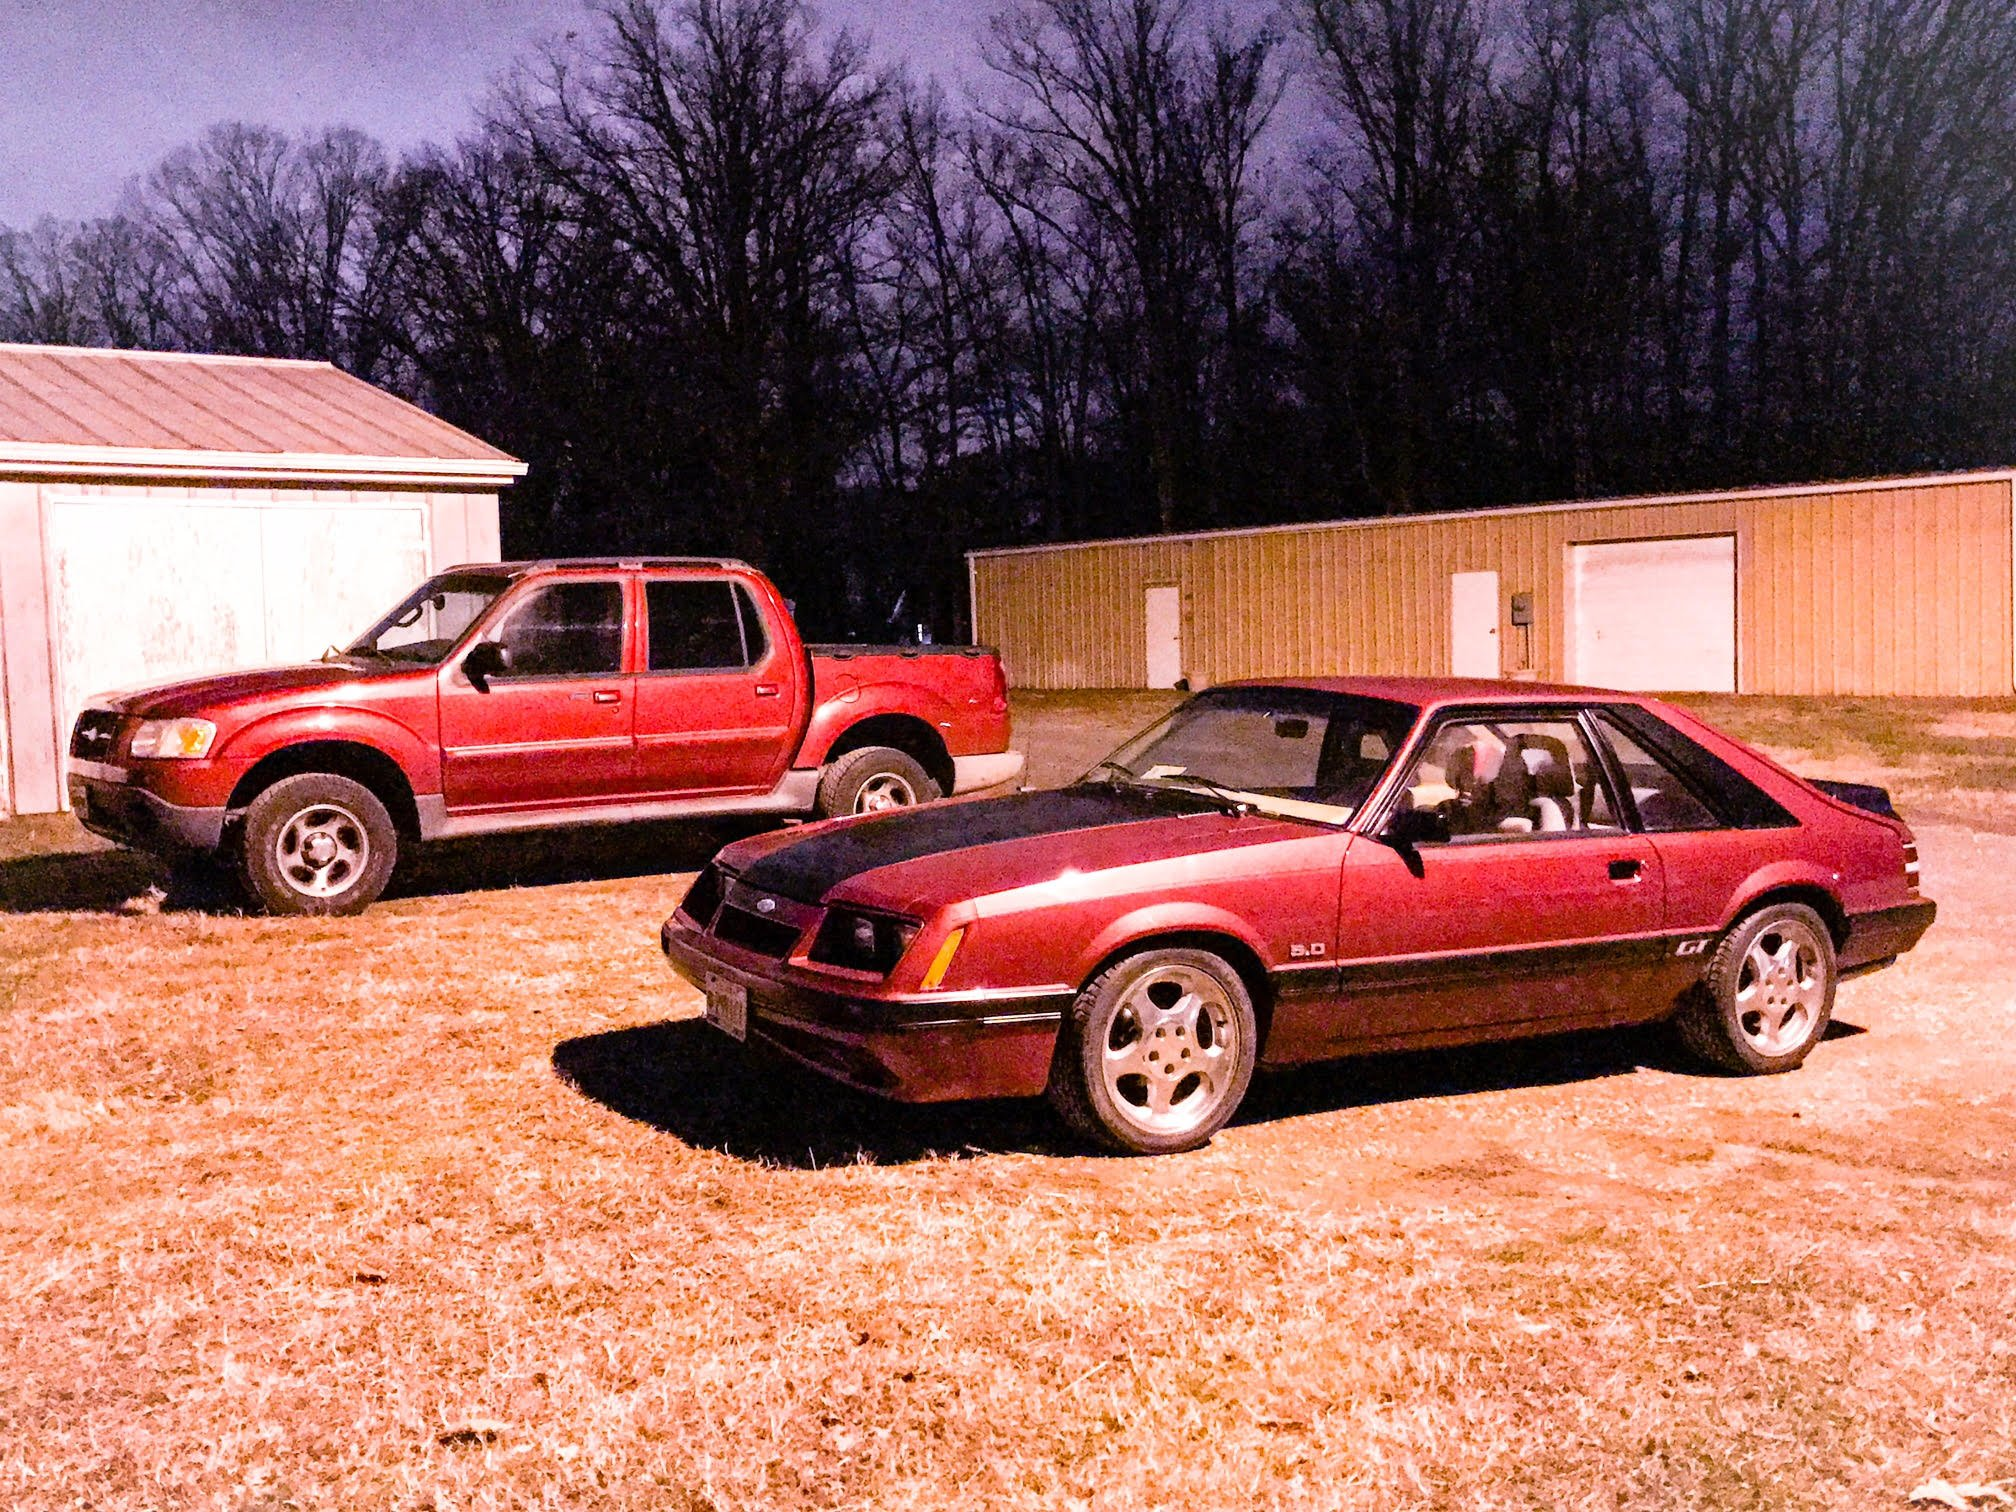 1998 Ford Mustang Gt >> 1979-1993 Fox Body Ford Mustang Picture Thread - Page 3 - Ford Mustang Forum